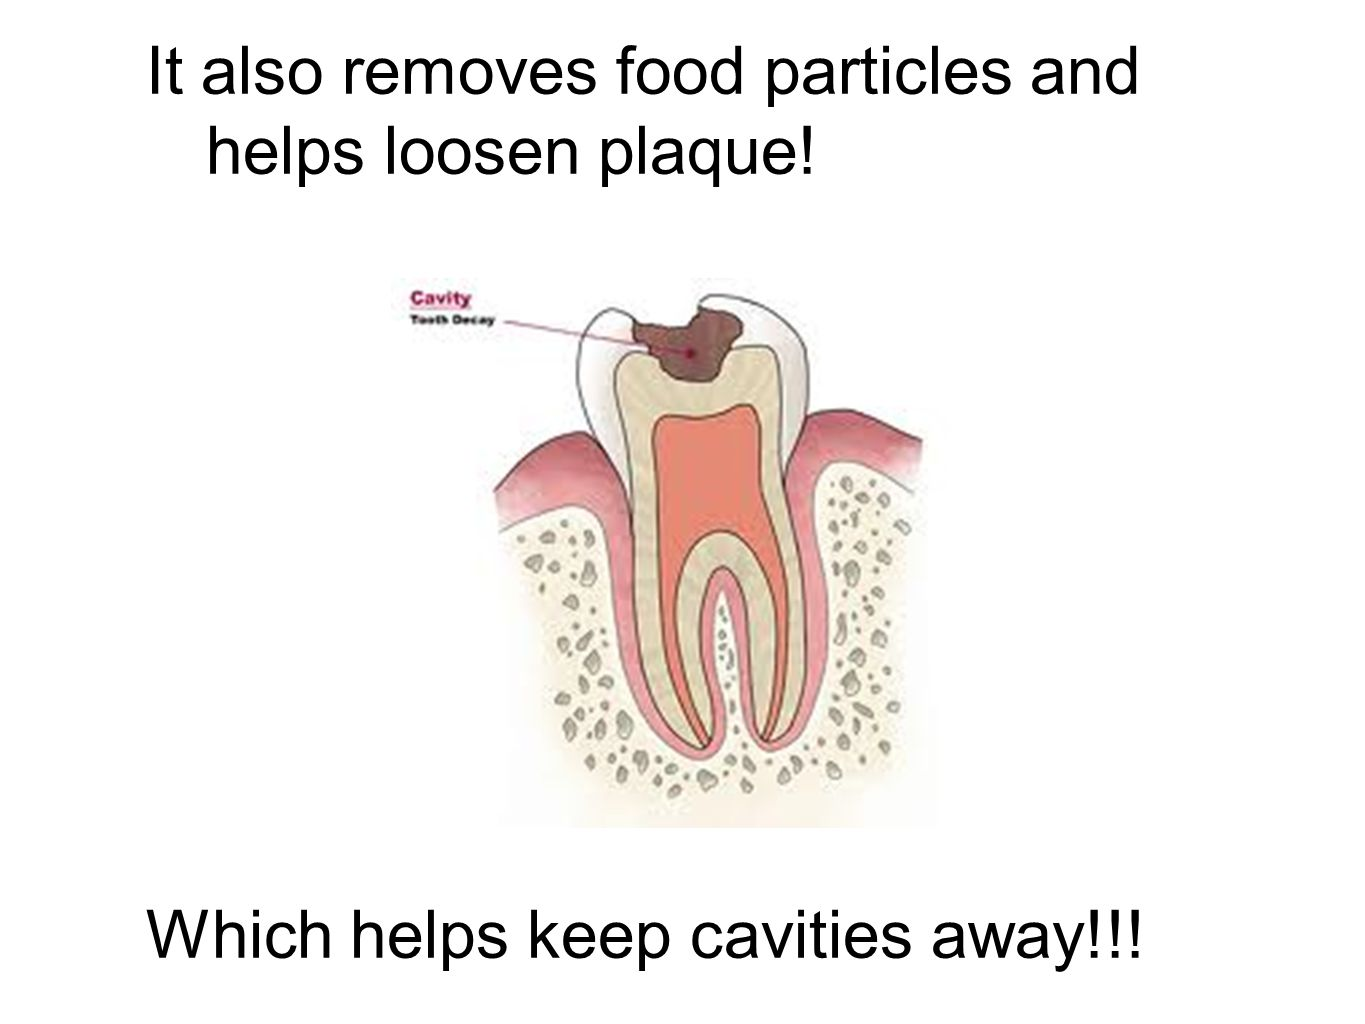 It also removes food particles and helps loosen plaque!